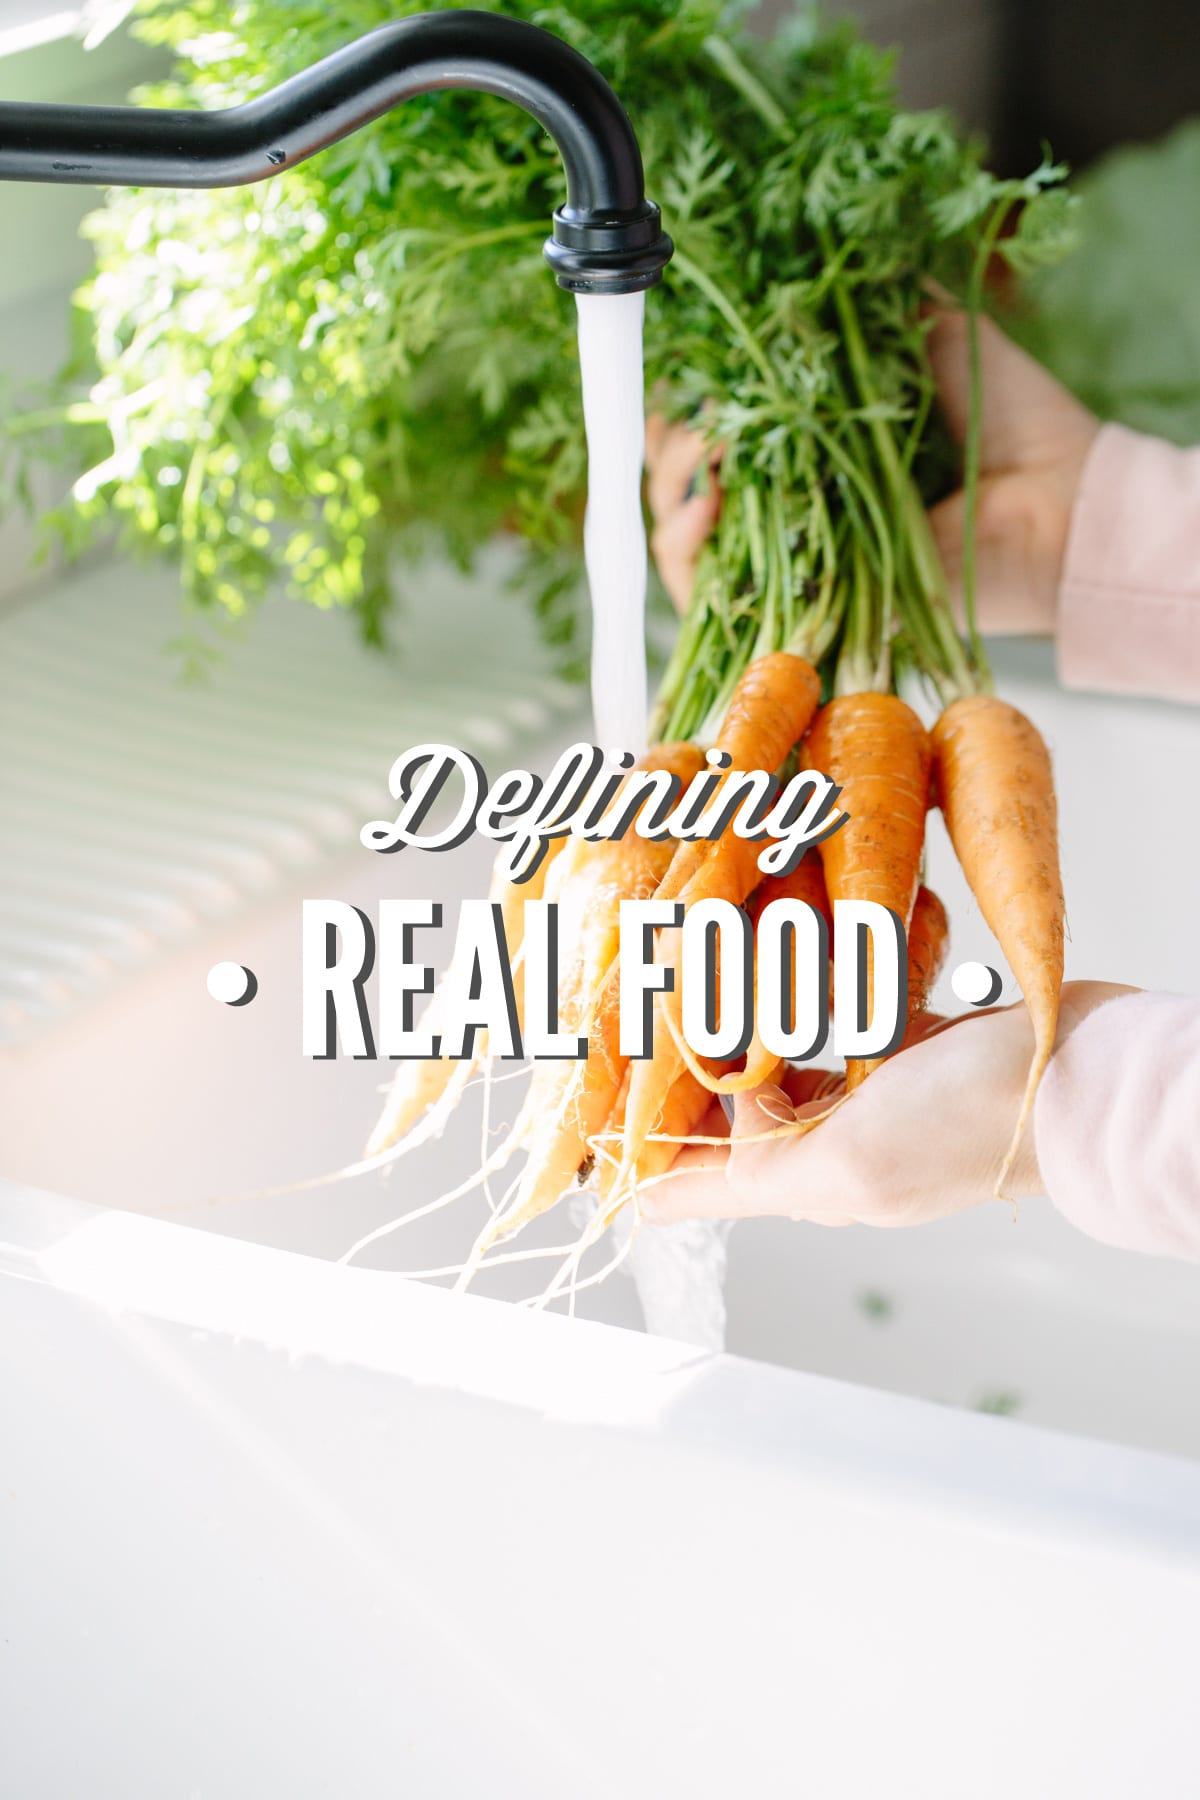 Defining Real Food: What does real food really look like?